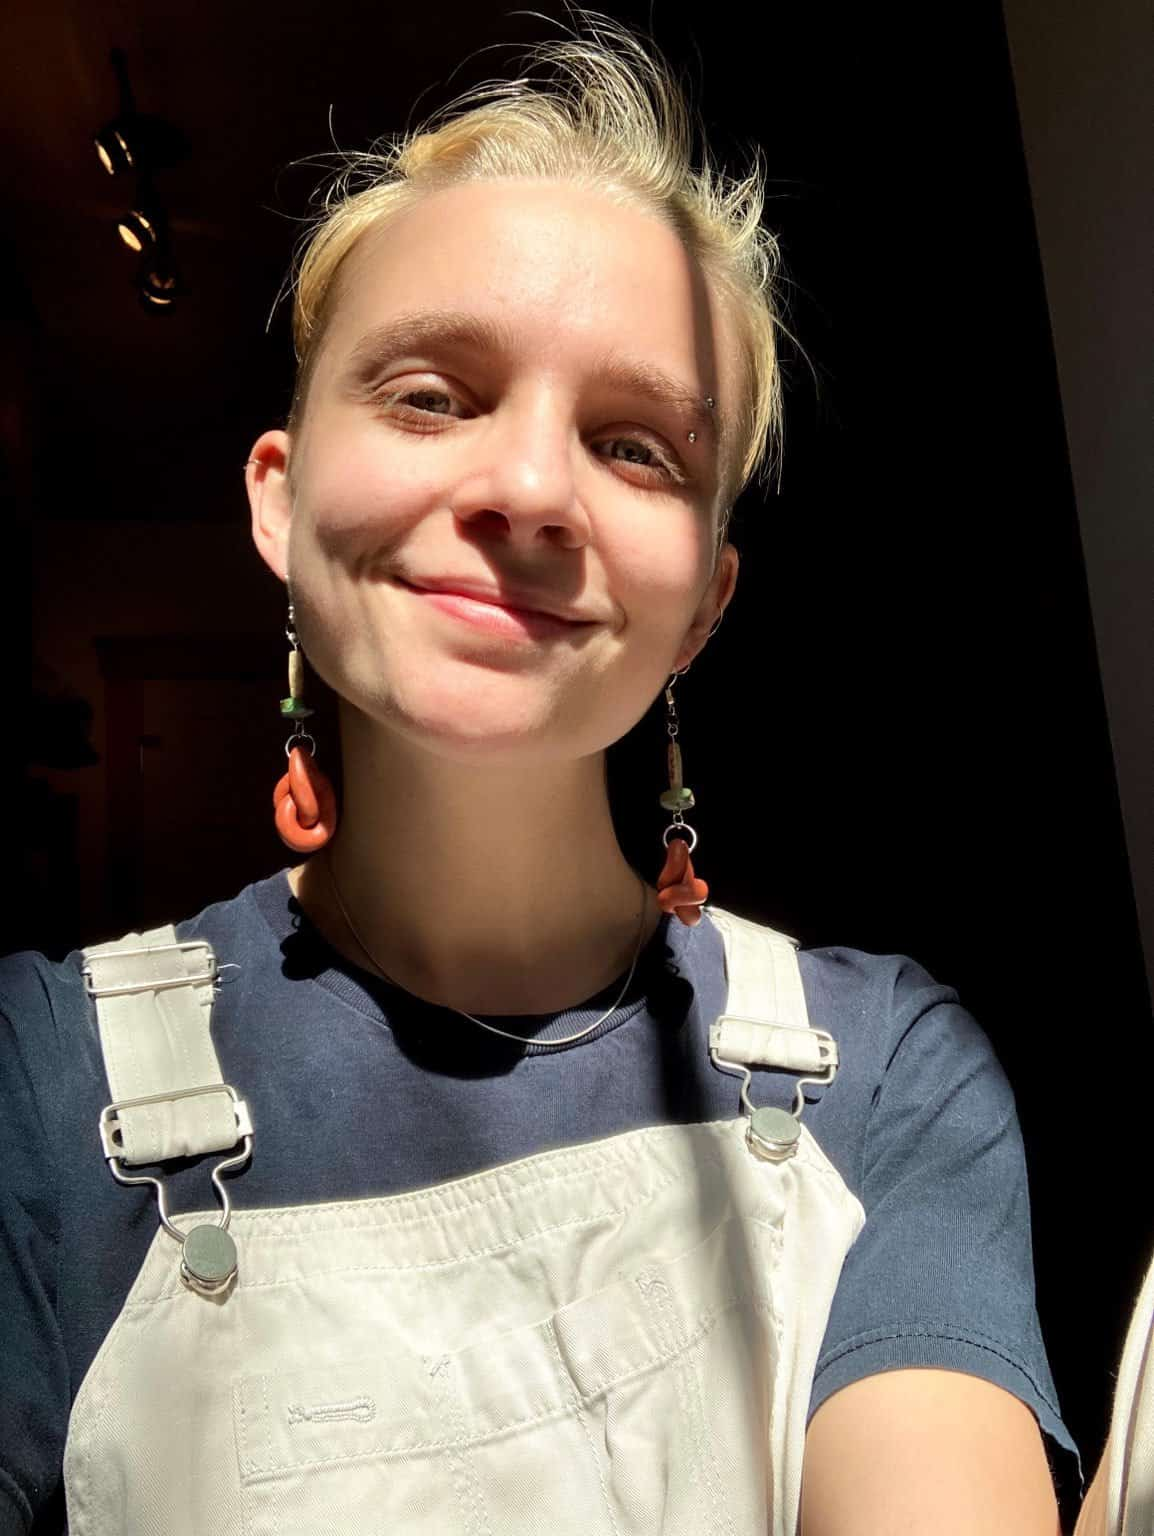 Oli a white non binary presenting person, smiling for the camera, wearing a beige overall, blue navy shirt and orange earnings.